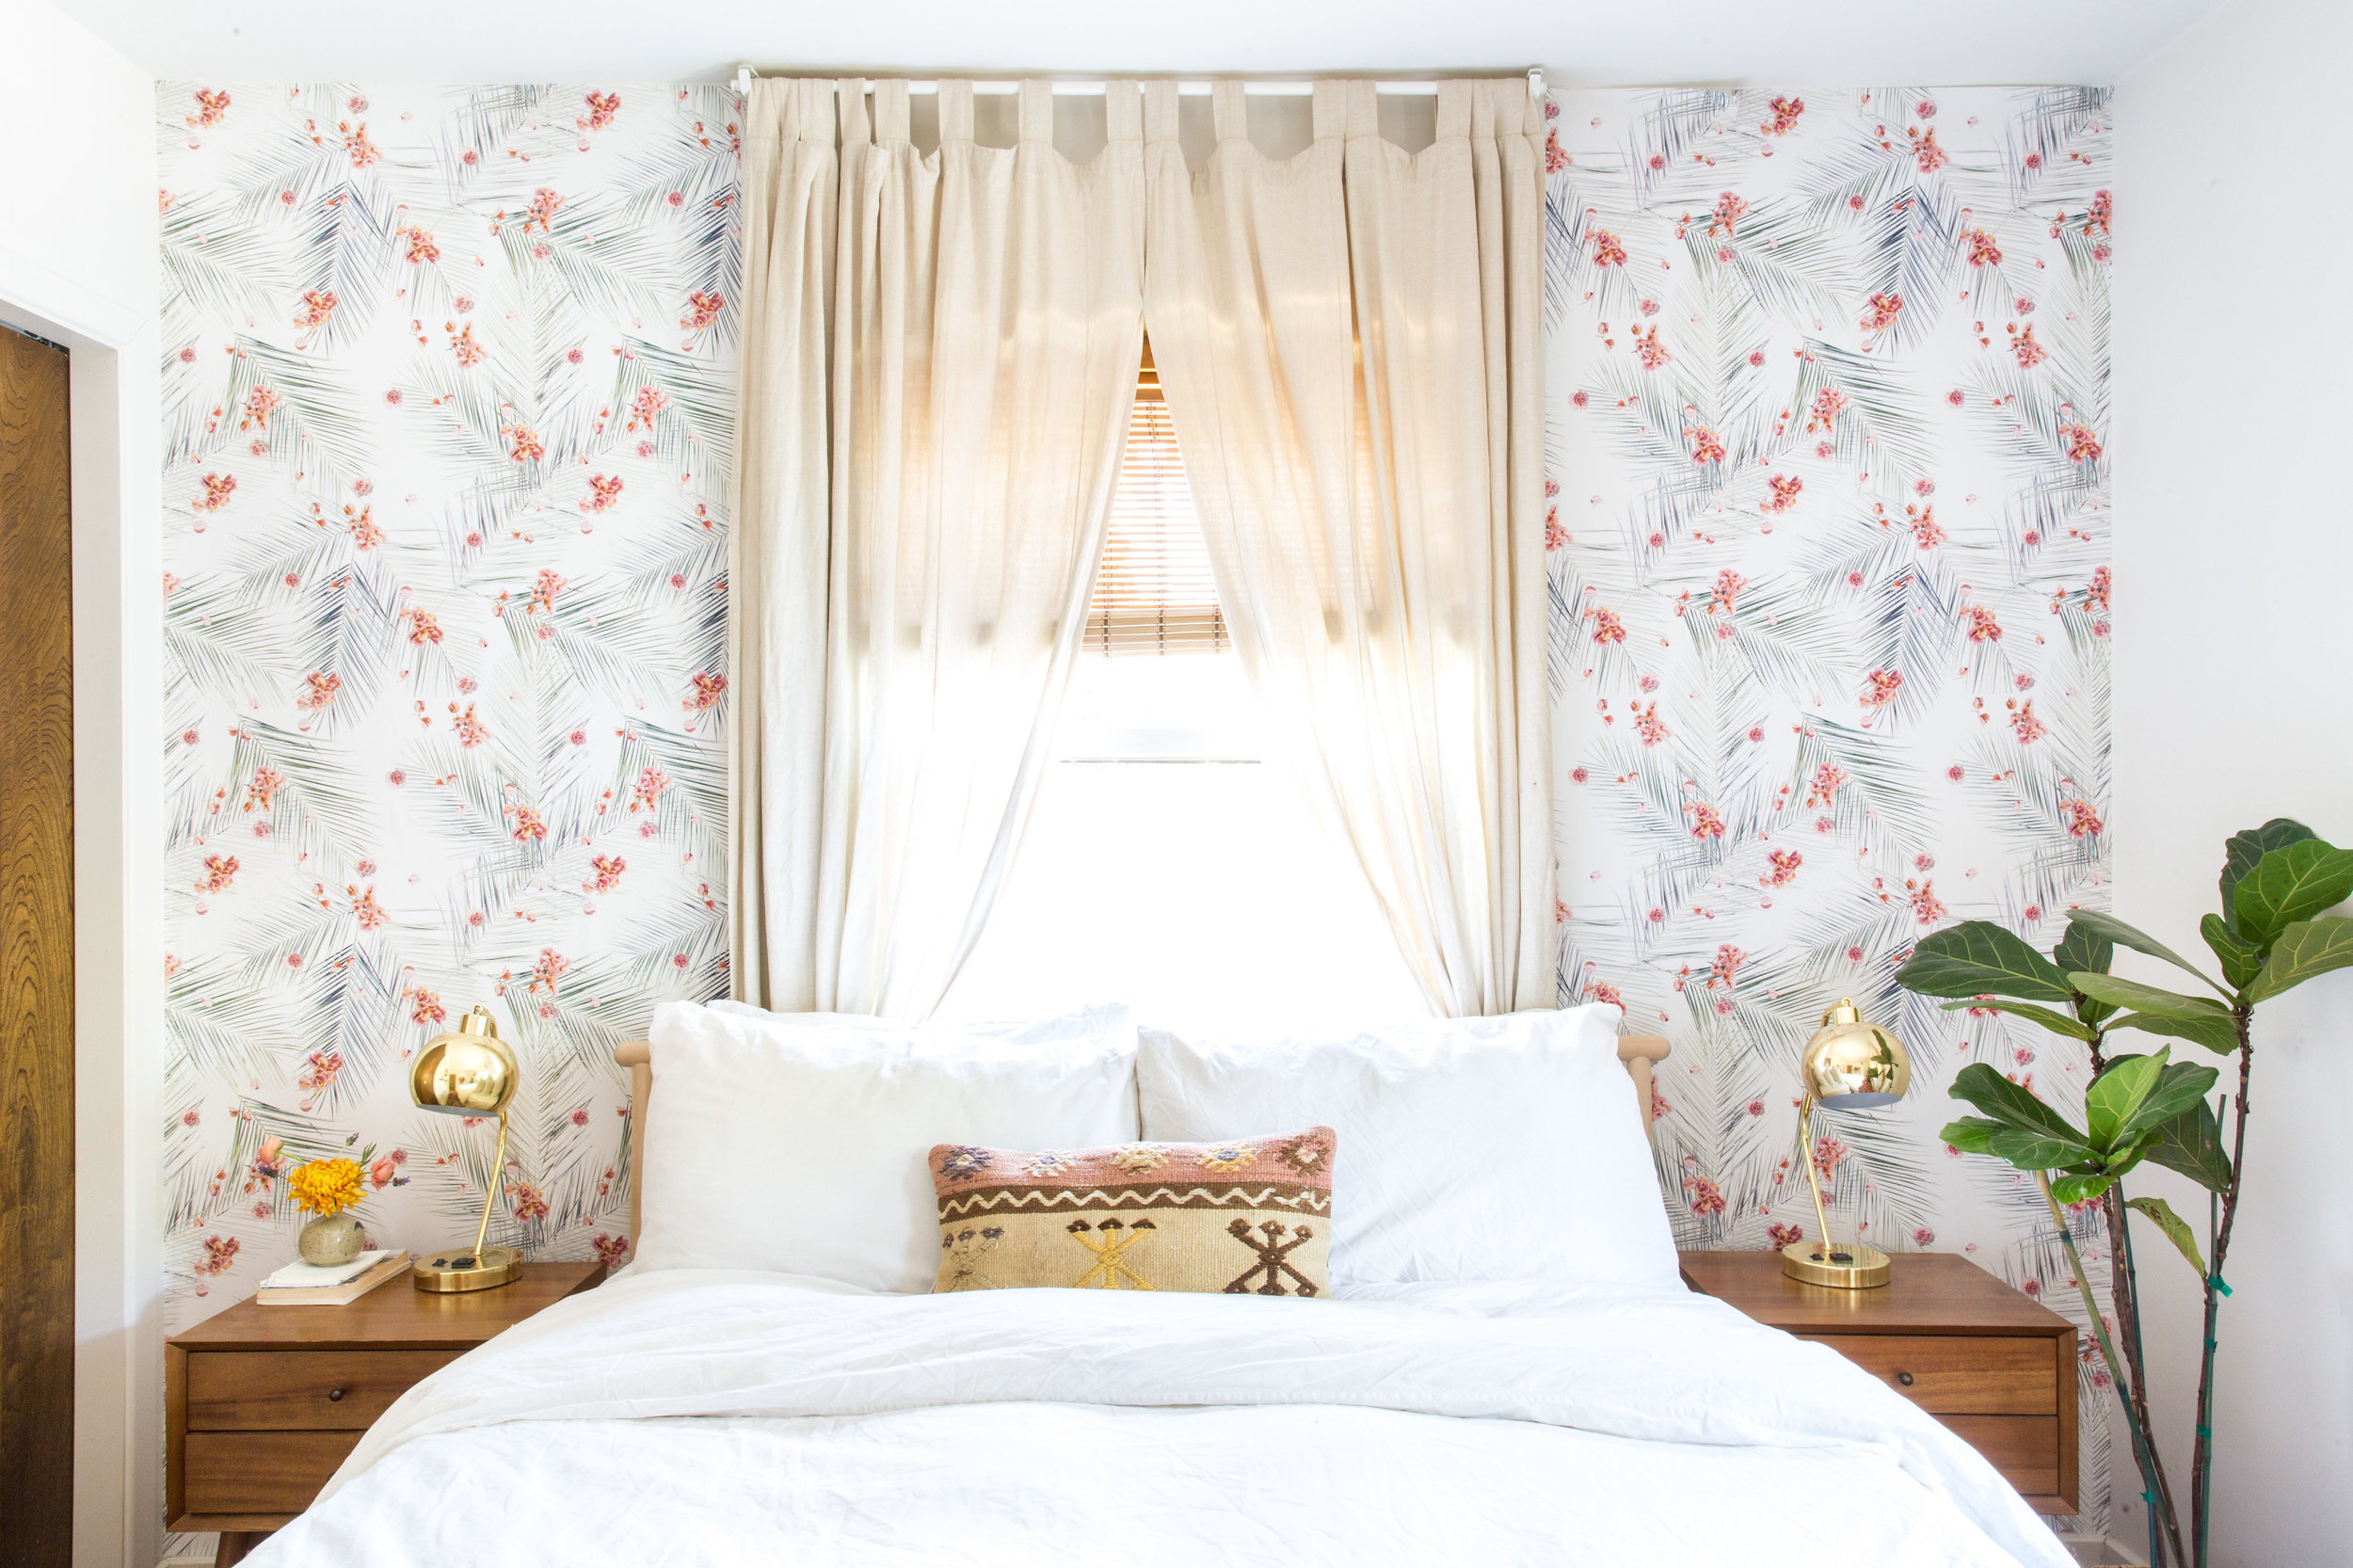 Removable Wallpaper Sources For Renters Apartment Therapy